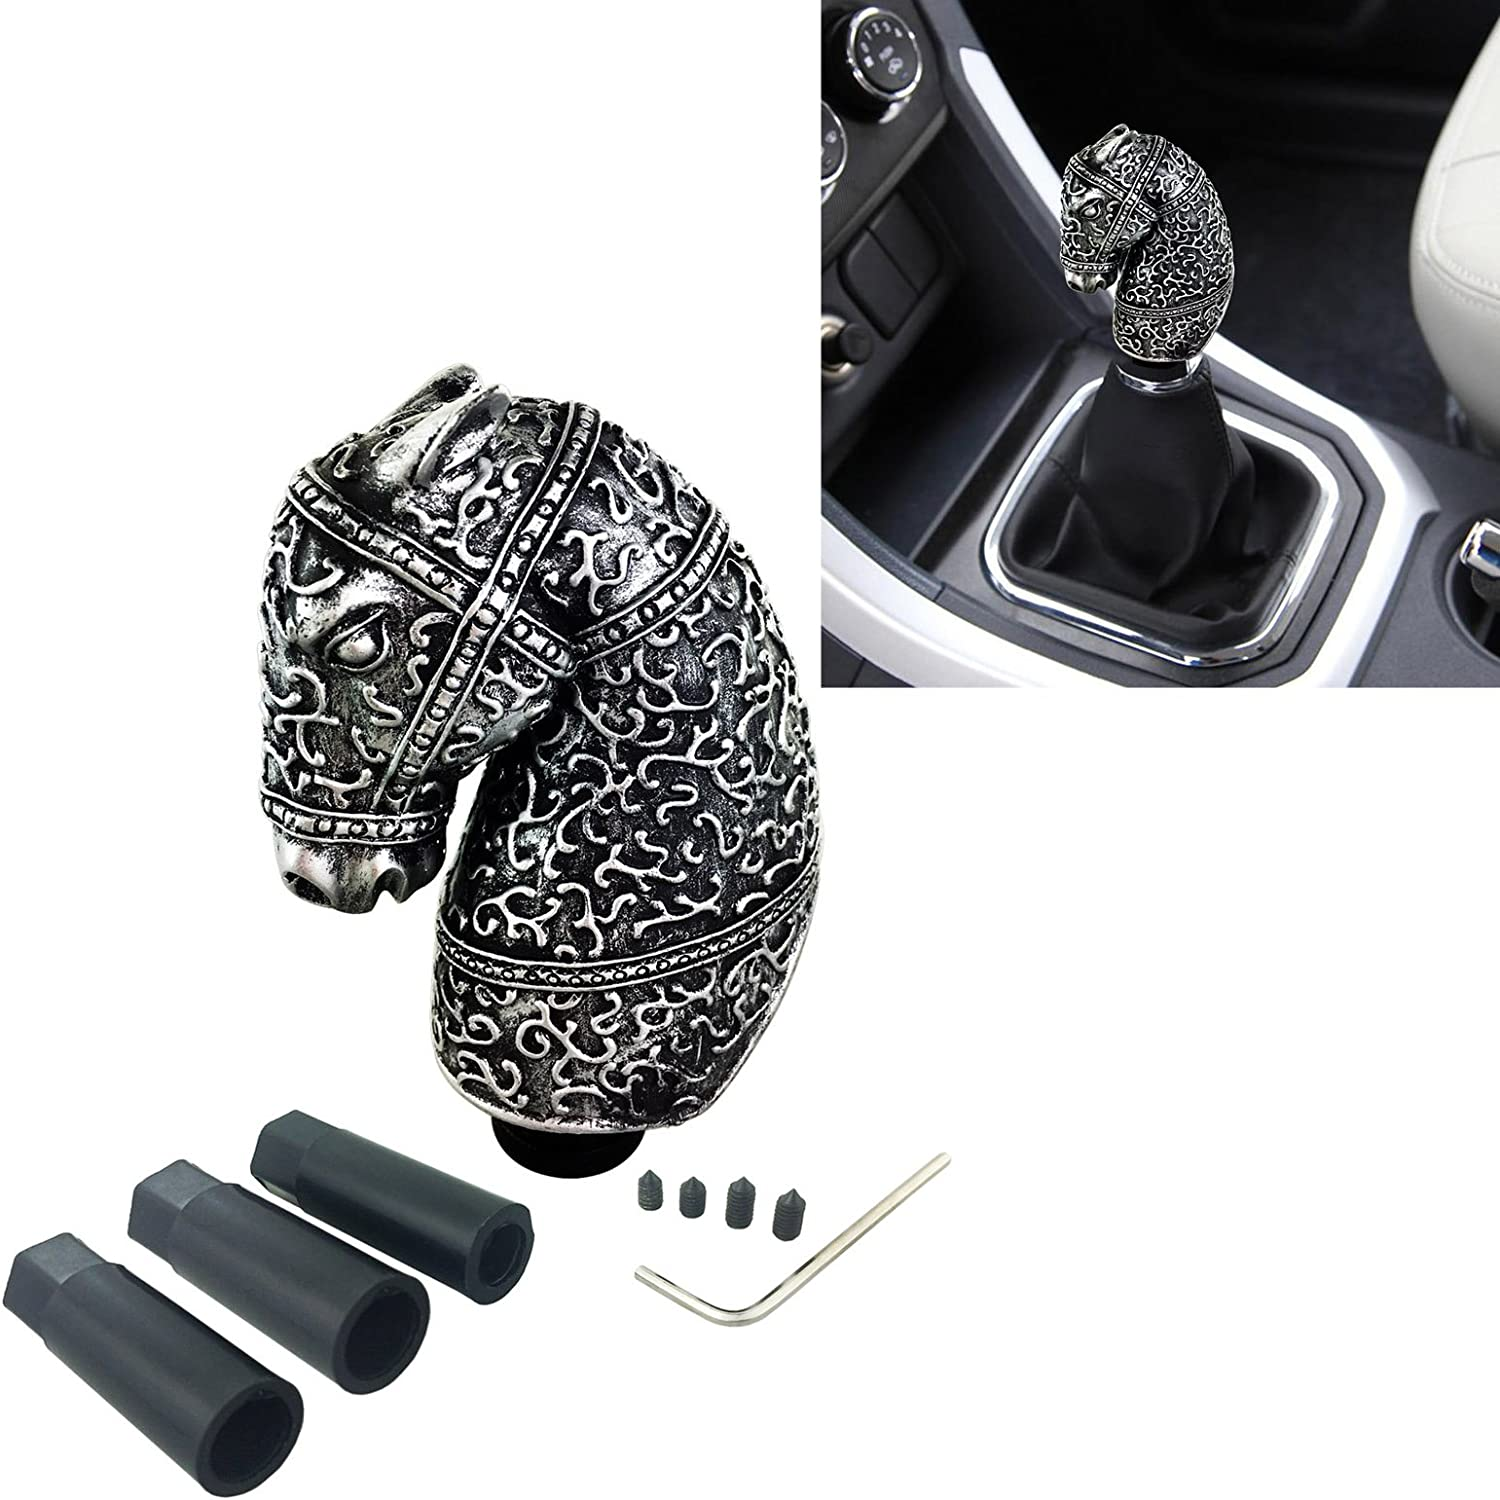 Arenbel Gear Lever Knob Stick Shifting Shifter Shift Handle fit Most Manual Automatic Vehicles Black